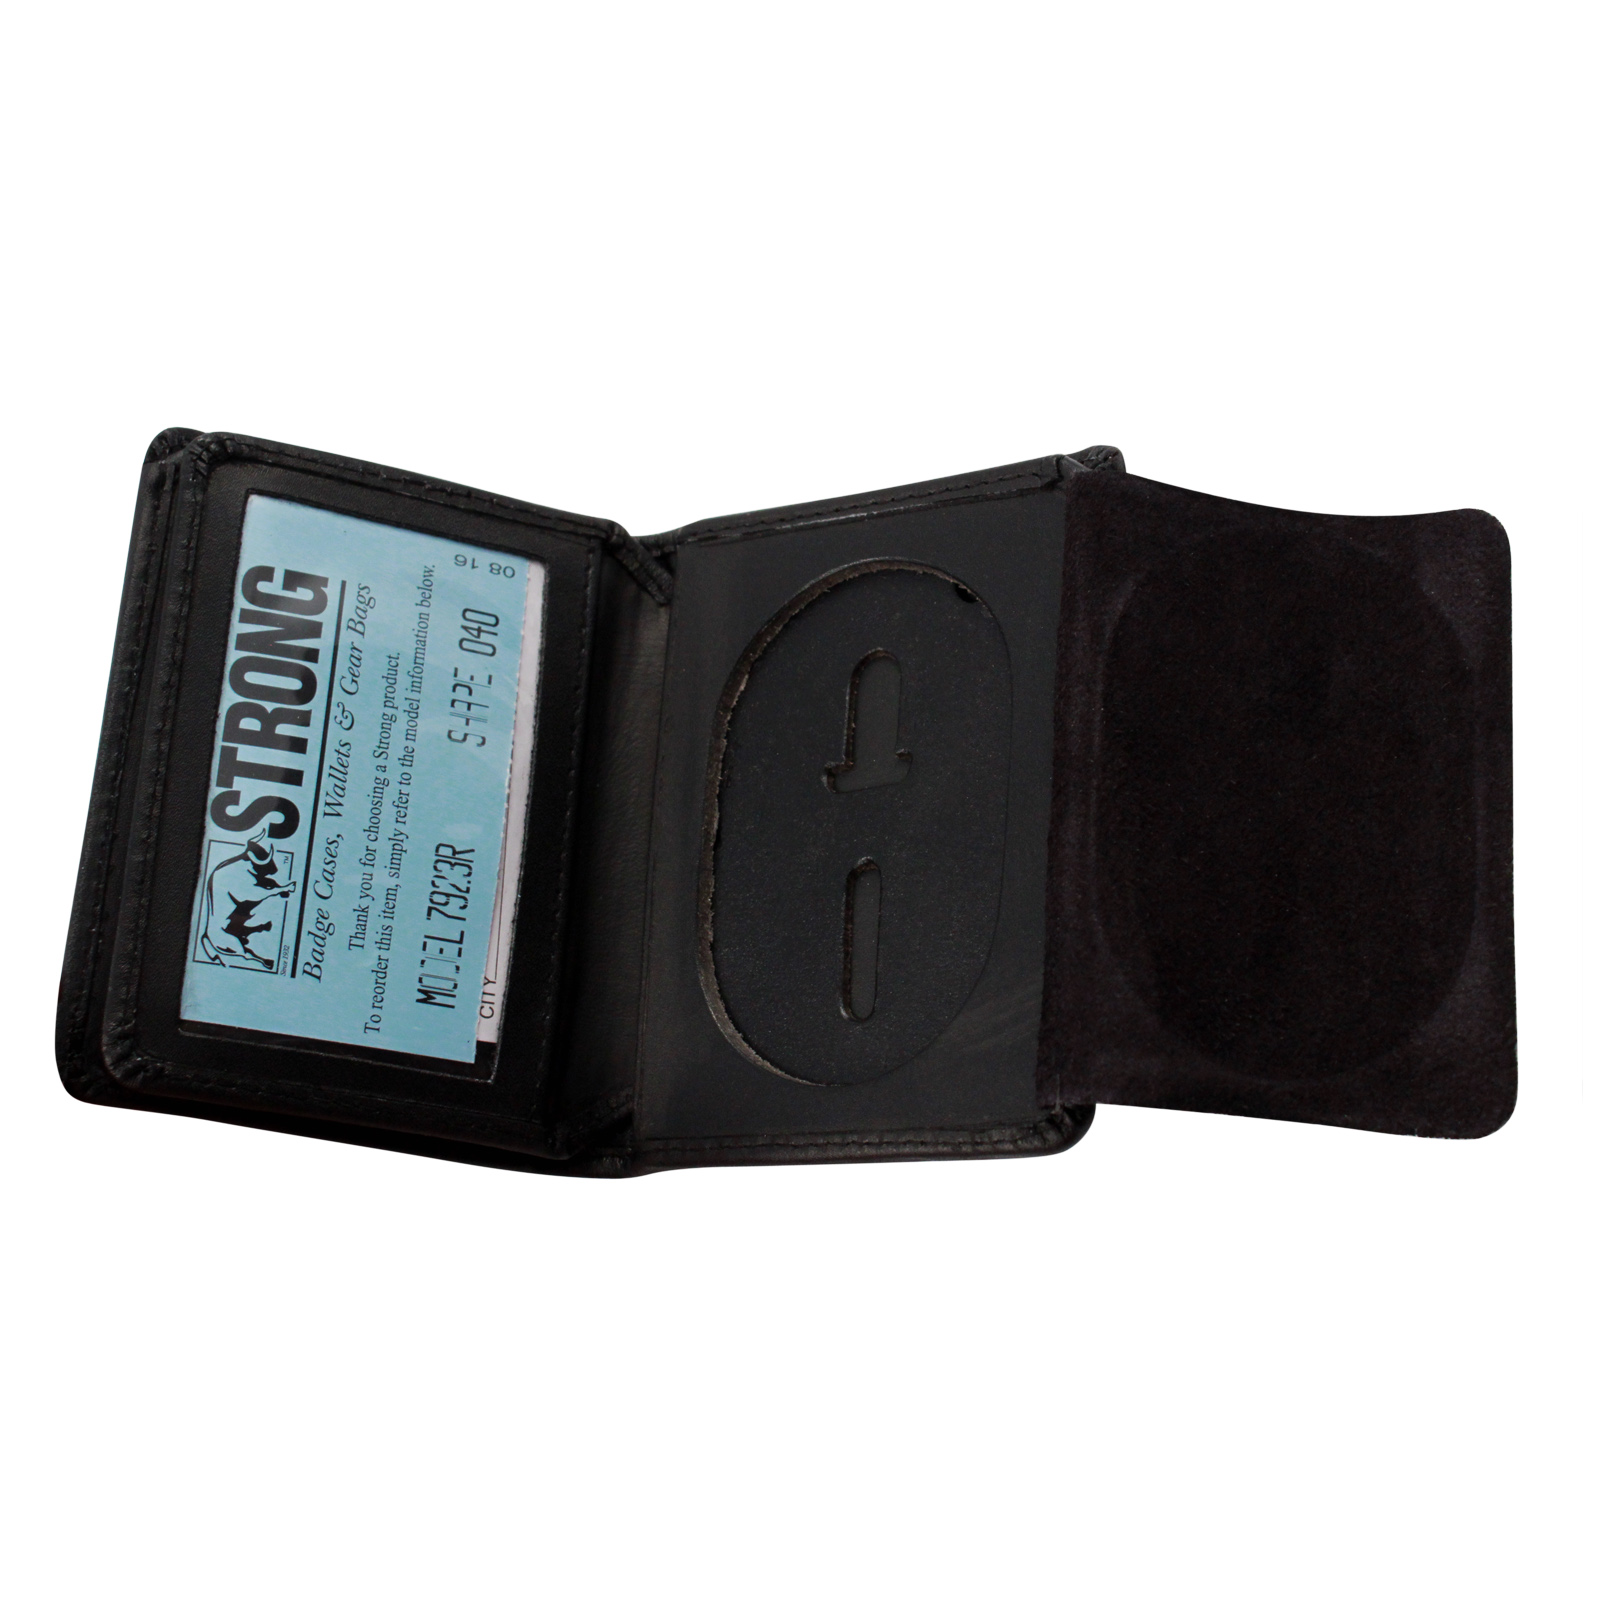 """Radio Frequency ID Protection Badge Wallet Fits Star Badges up to 2 3/4"""" Oval Badge Holder View"""